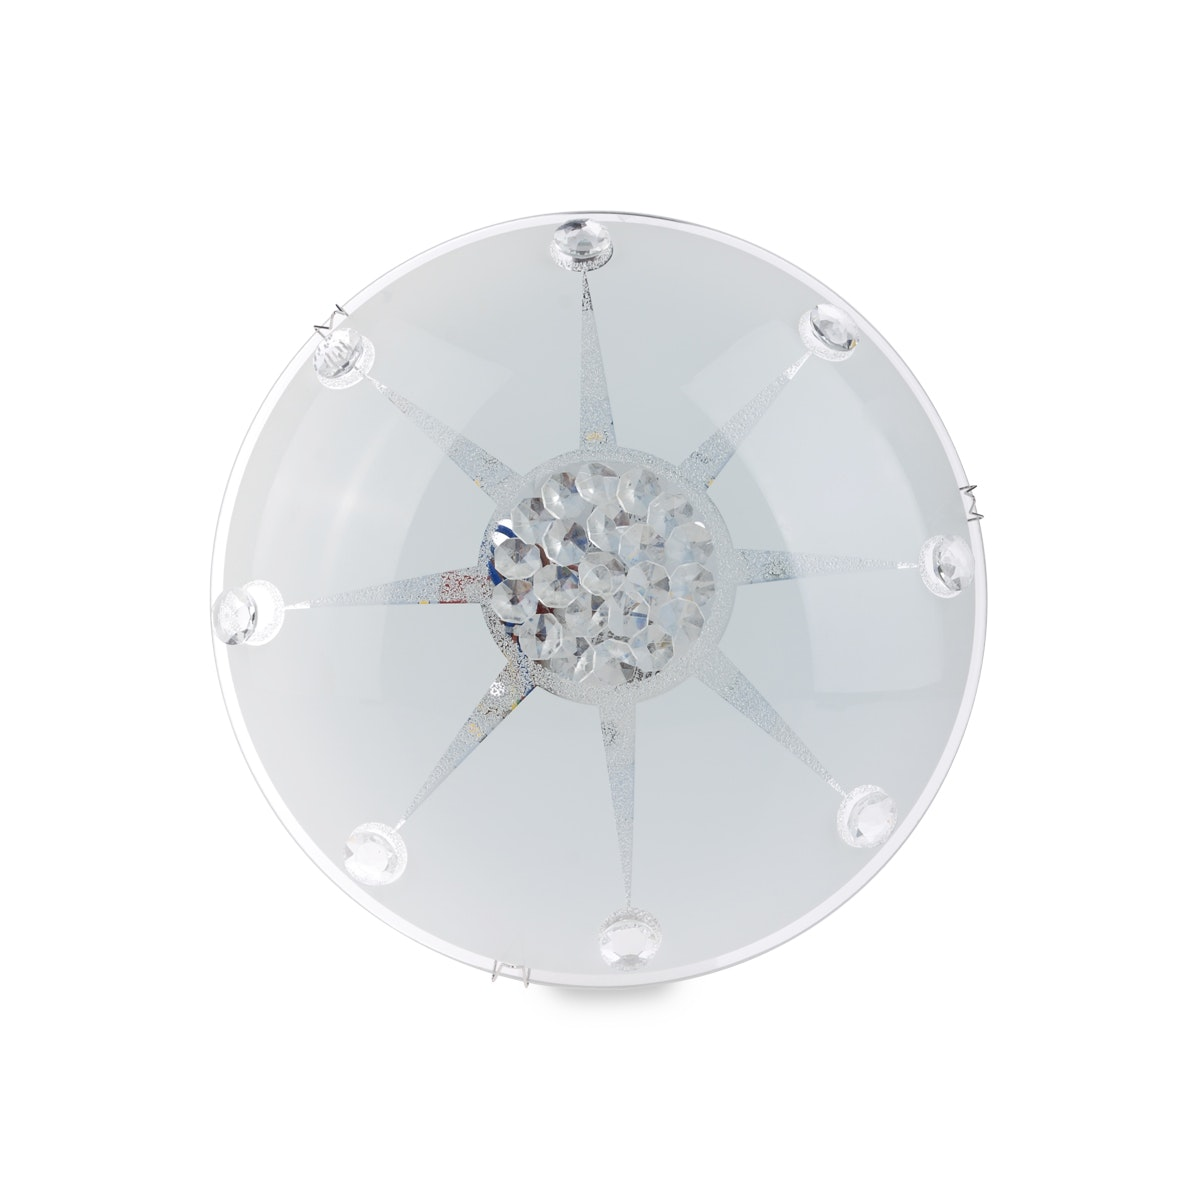 3+Projects Lampu Plafon/Ceiling Lamp Metal Base Crystal Beads 3+DL-C98006-8W-DY